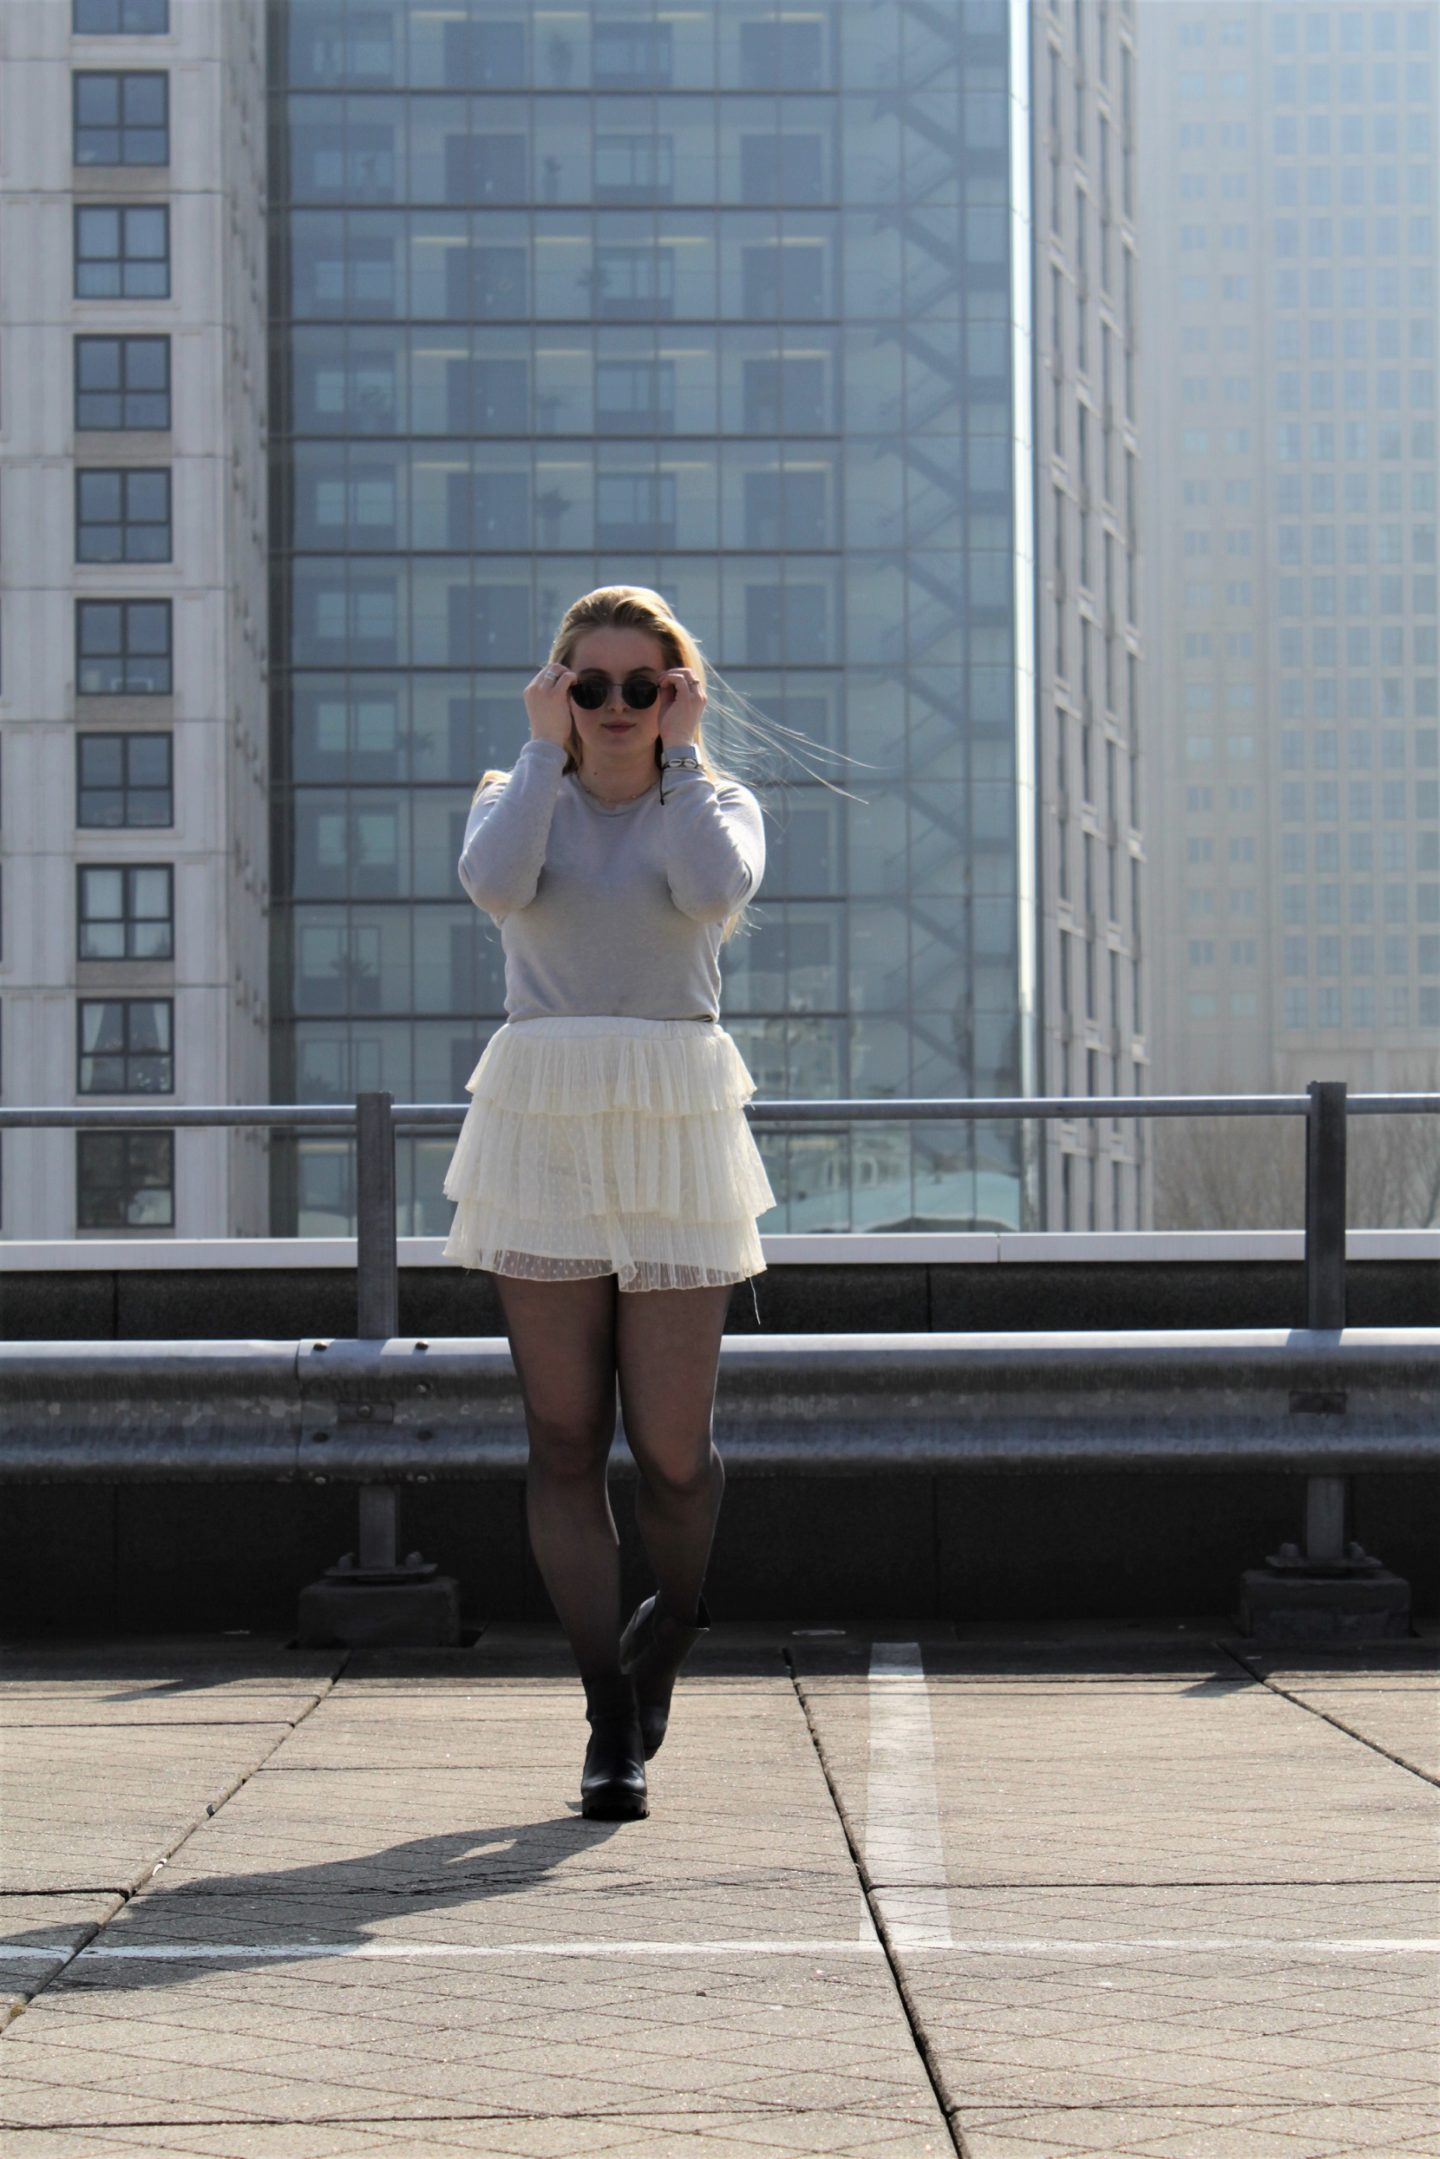 Rotterdam, skyscrapers, outfit of the day, ballerina, rockchick, leren jasje, lenteoutfit